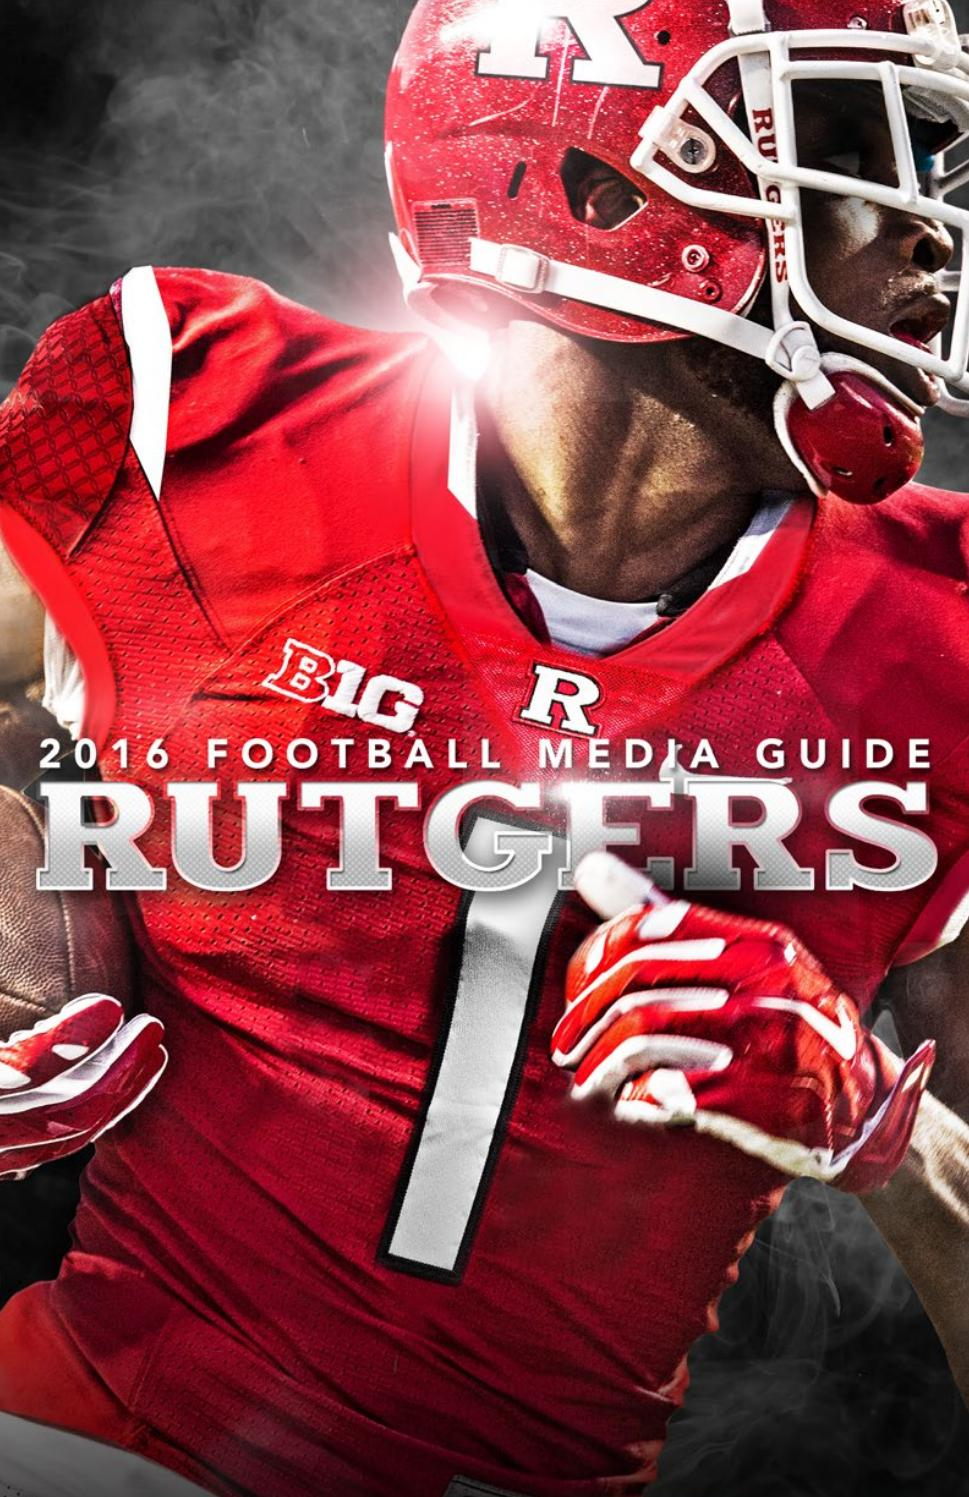 2016 rutgers football media guide by rutgers athletics - issuu